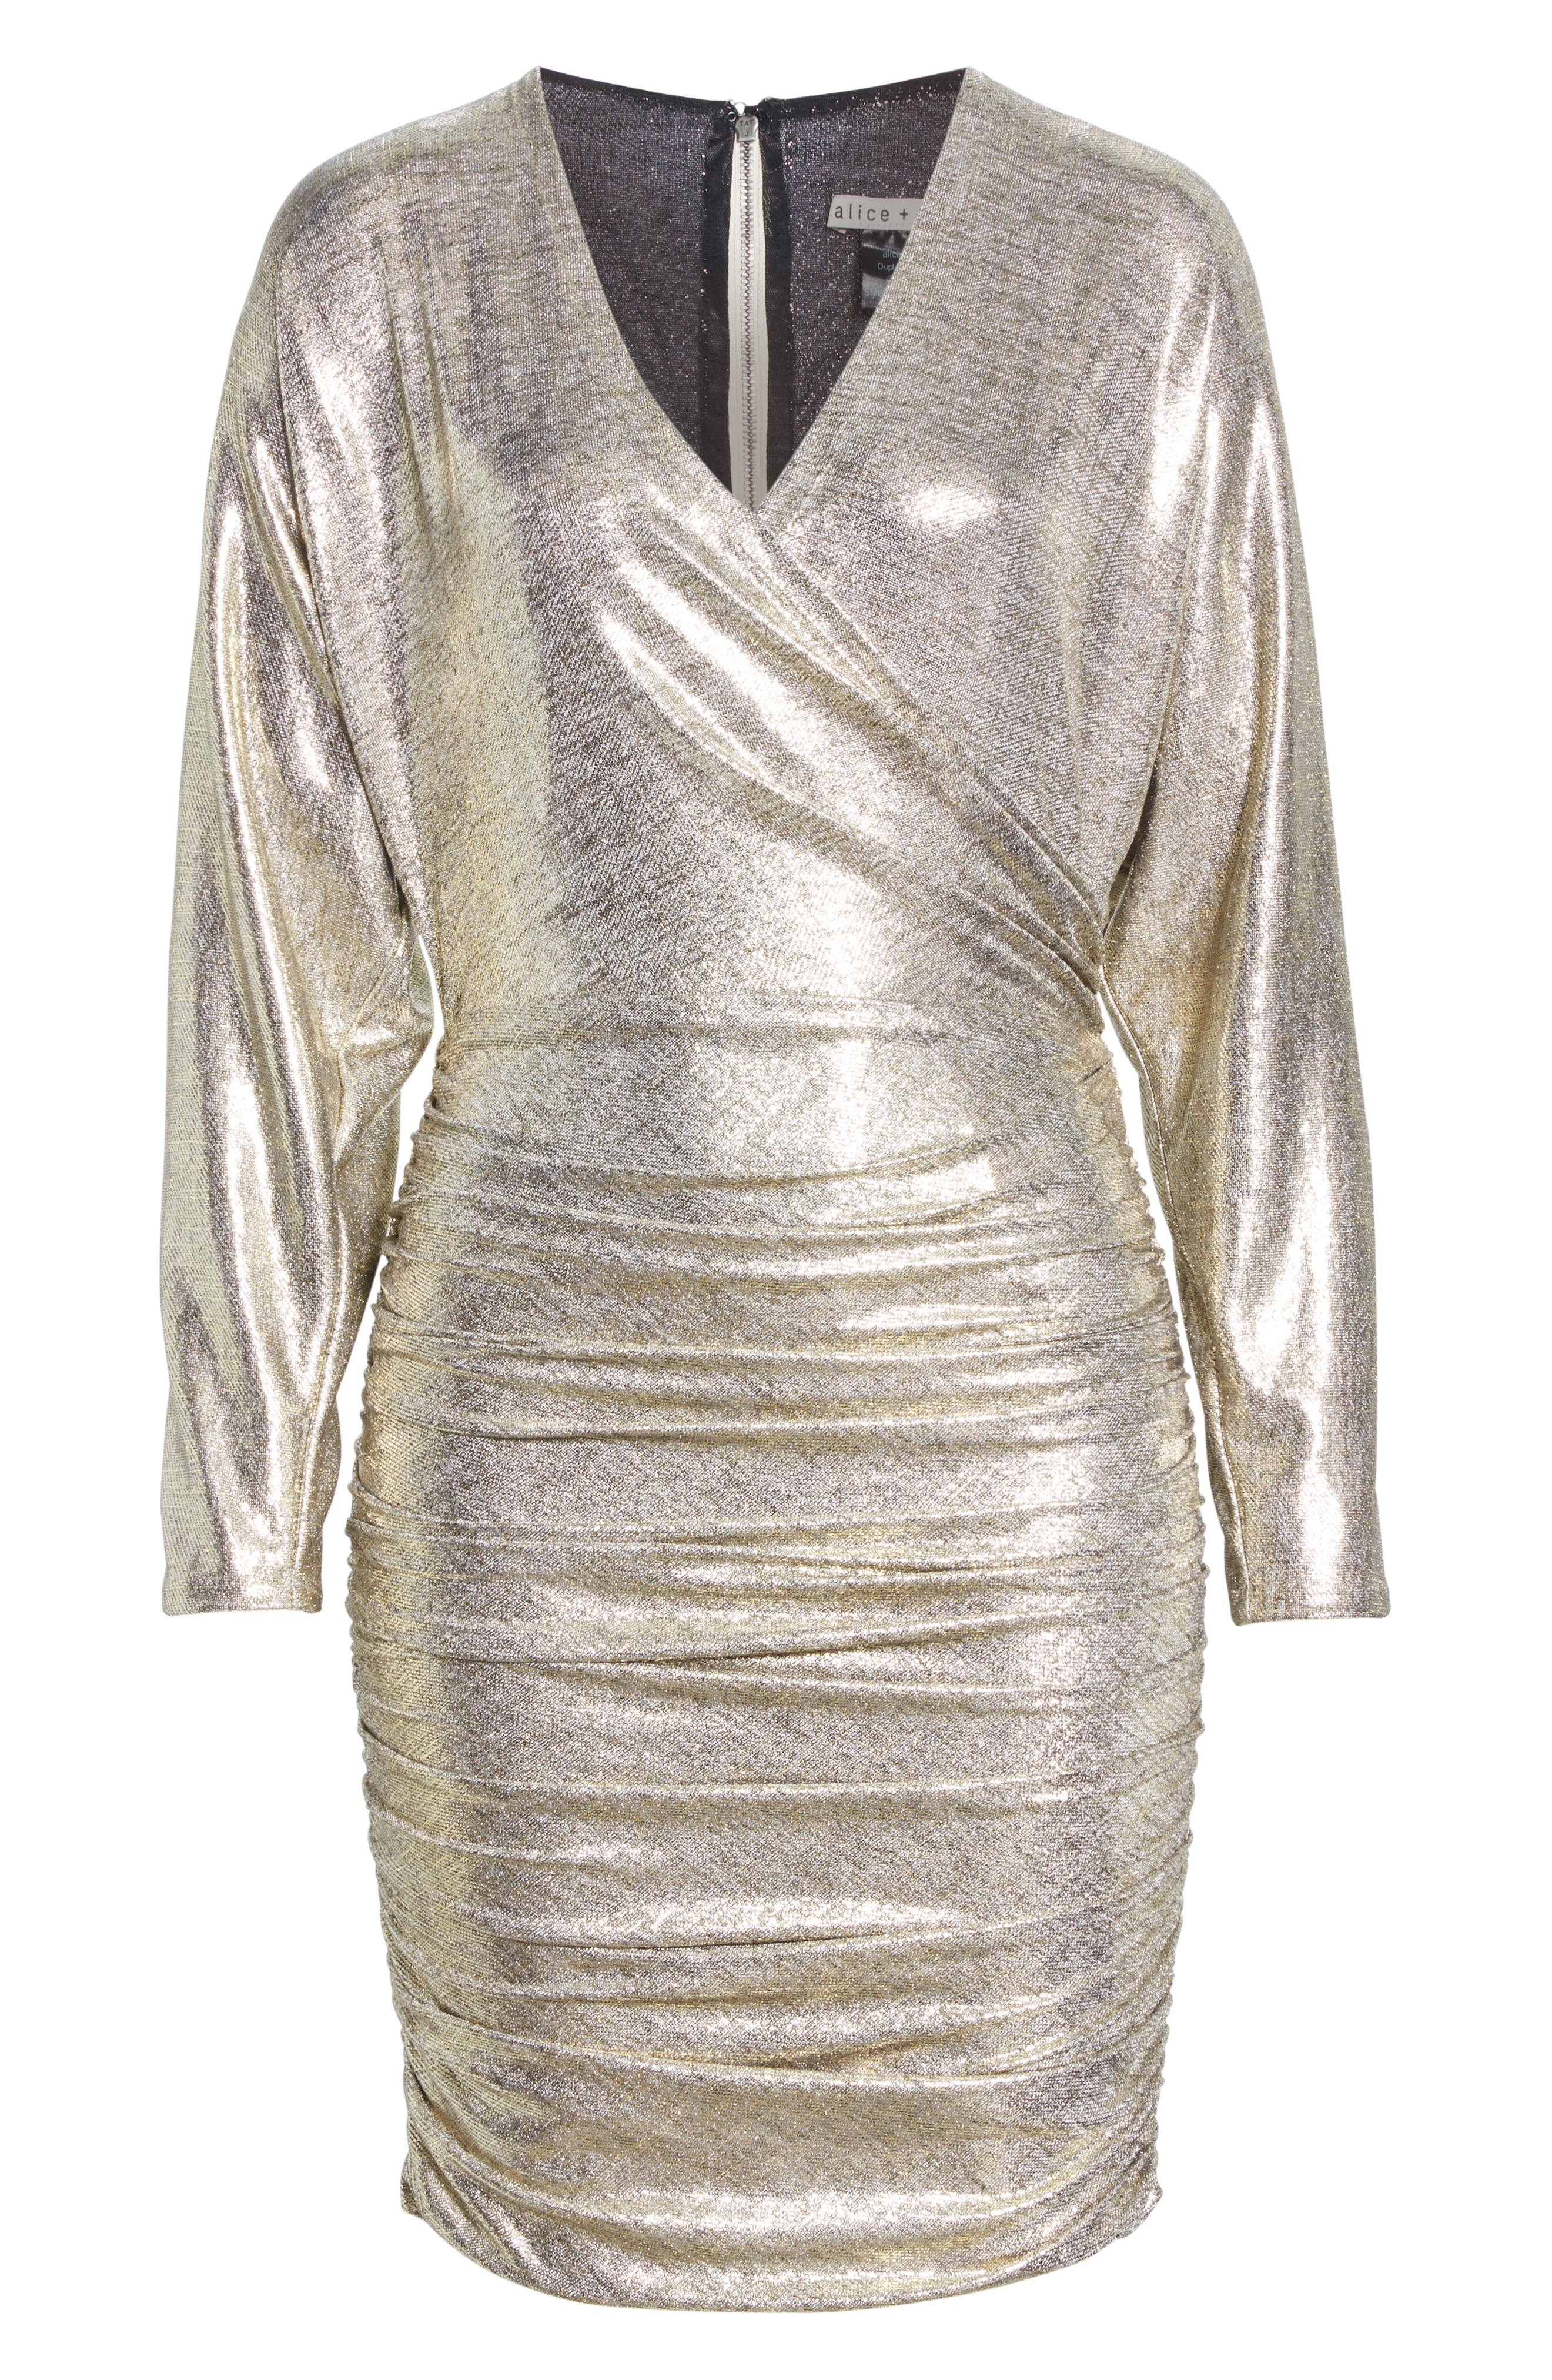 ALICE + OLIVIA, Pace Batwing Sleeve Party Dress, Alternate thumbnail 7, color, SILVER